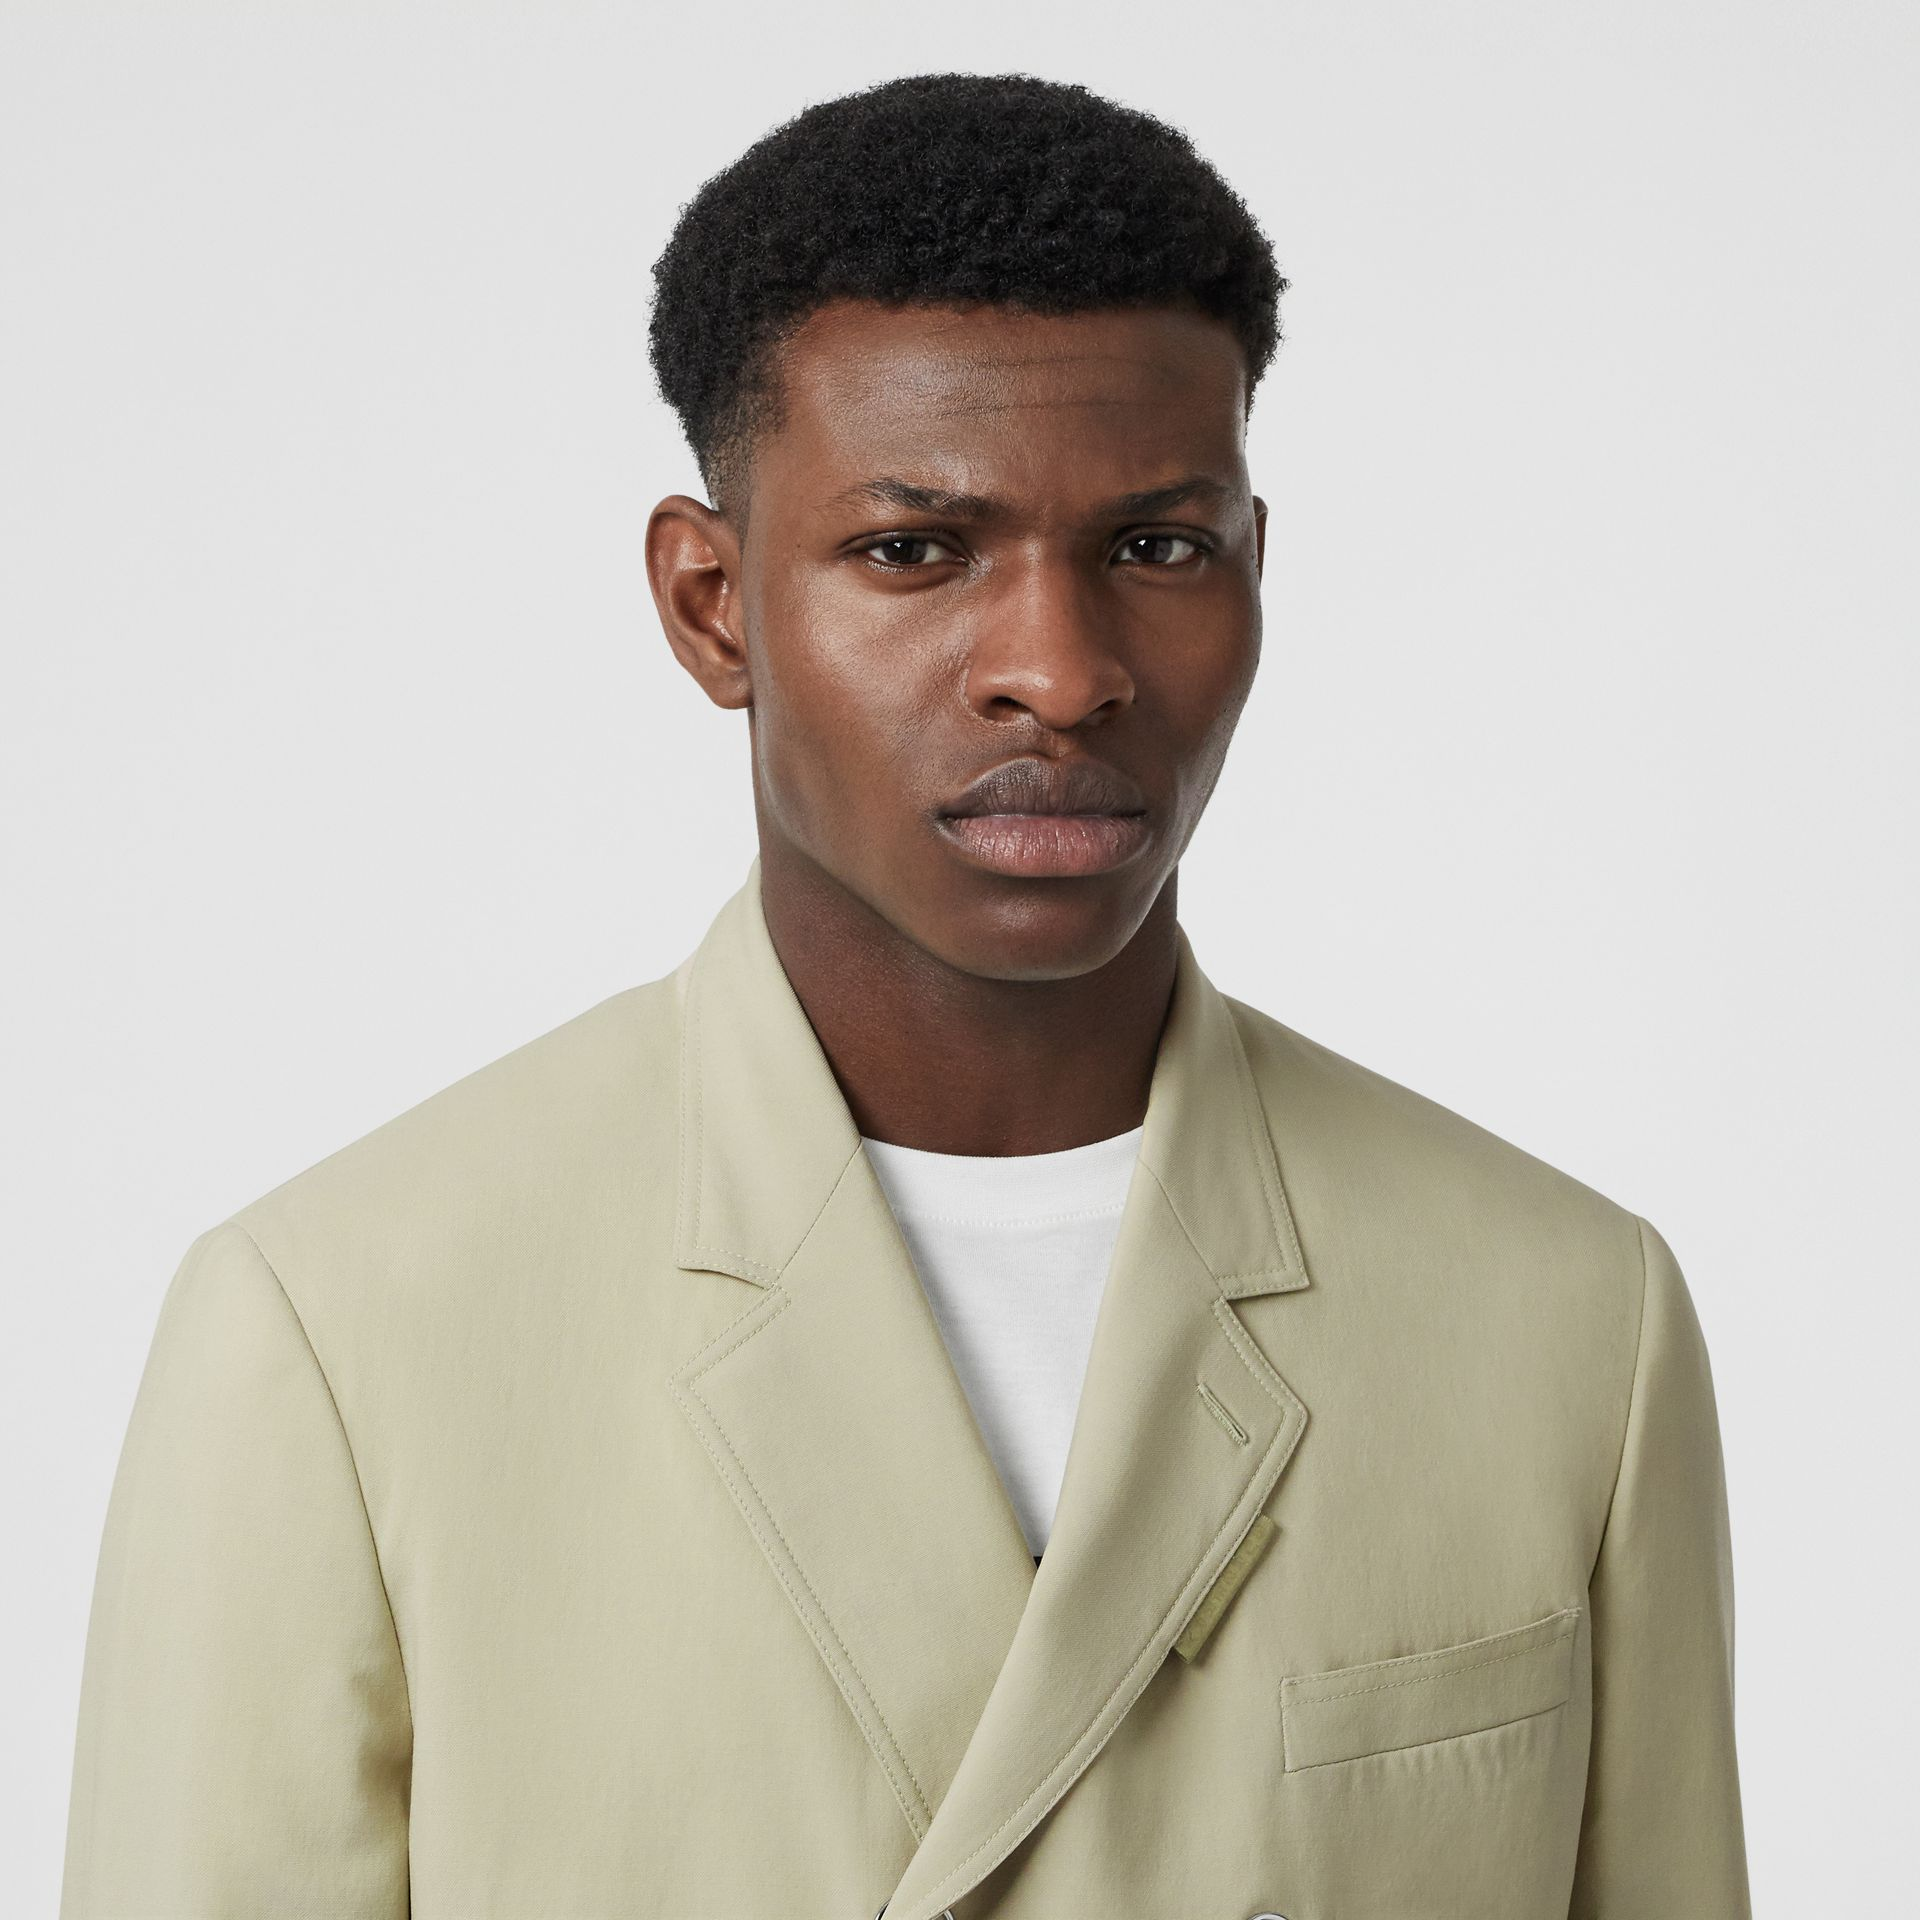 Slim Fit Press-stud Wool Tailored Jacket in Matcha | Burberry Australia - gallery image 9